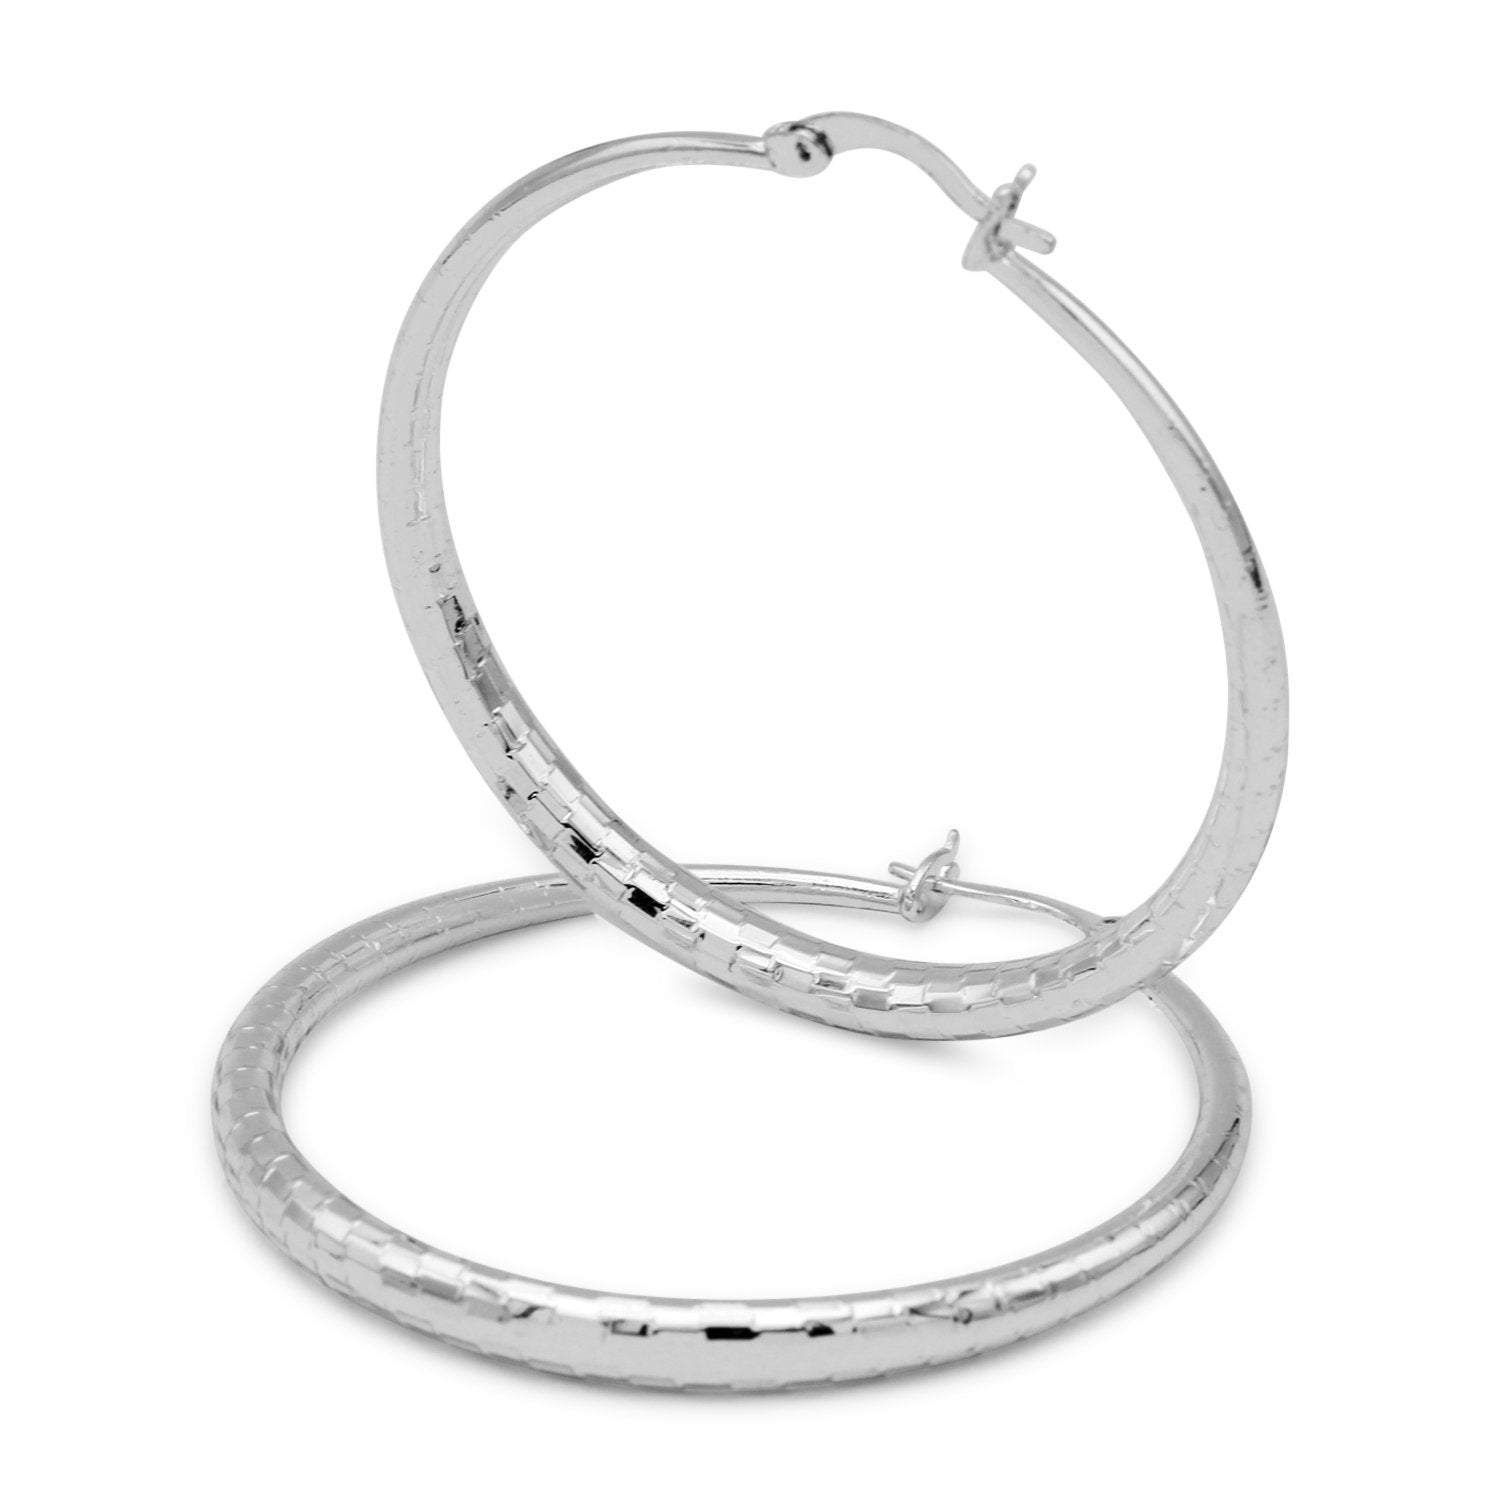 Fancy 14k White Gold Filled Hoop Earrings Fashion Jewelry 50mm